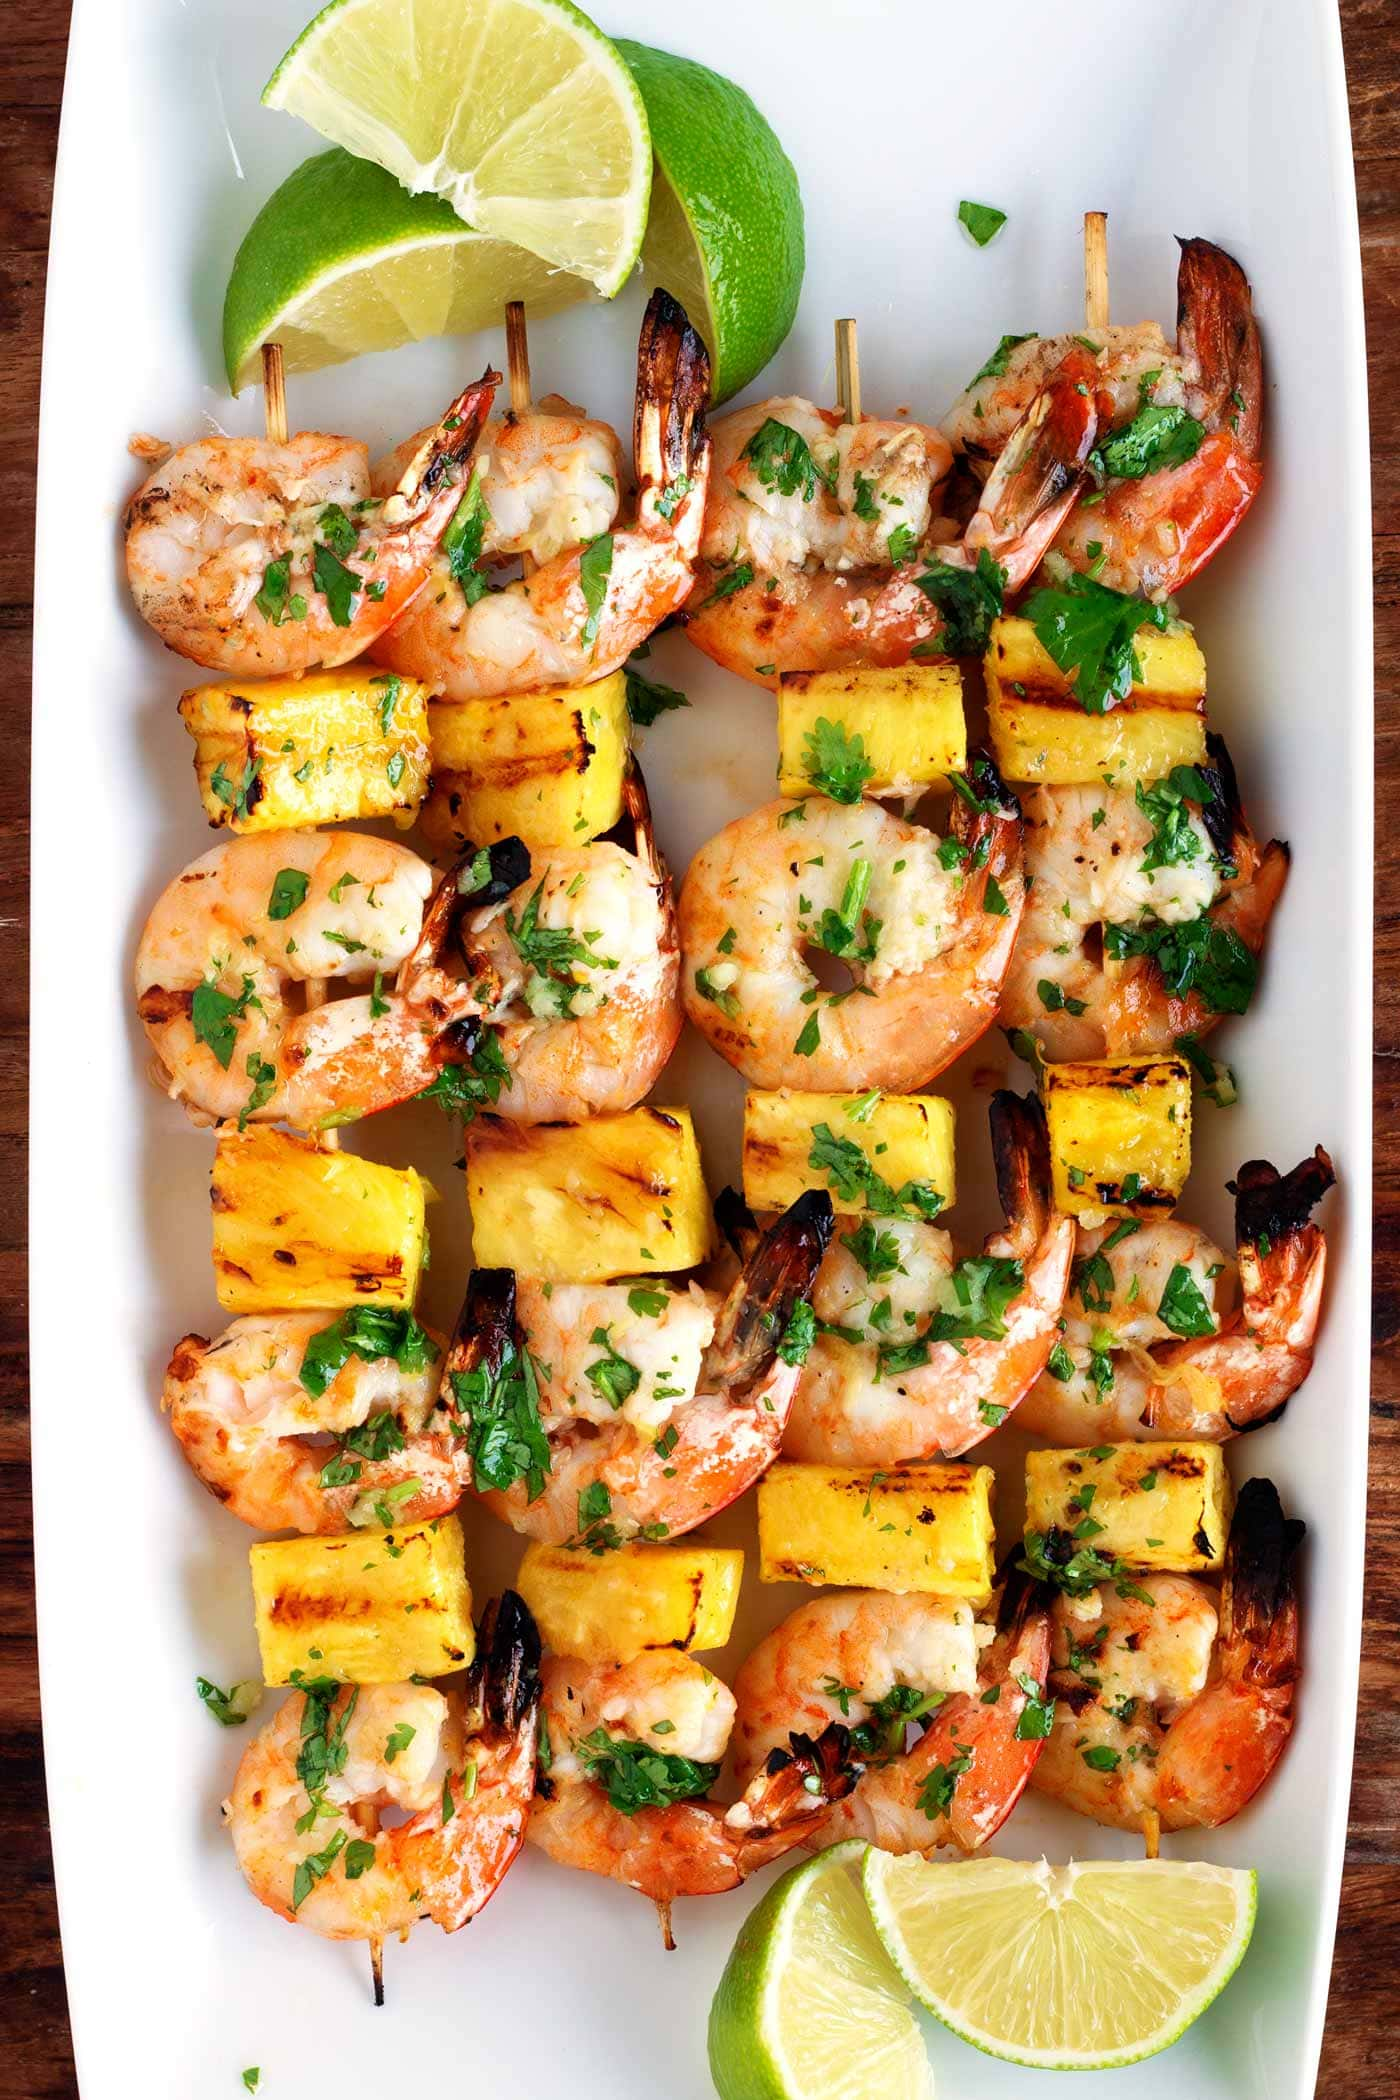 1be30fbc8a733 Grilled Shrimp & Pineapple Skewers with Garlic Cilantro Butter